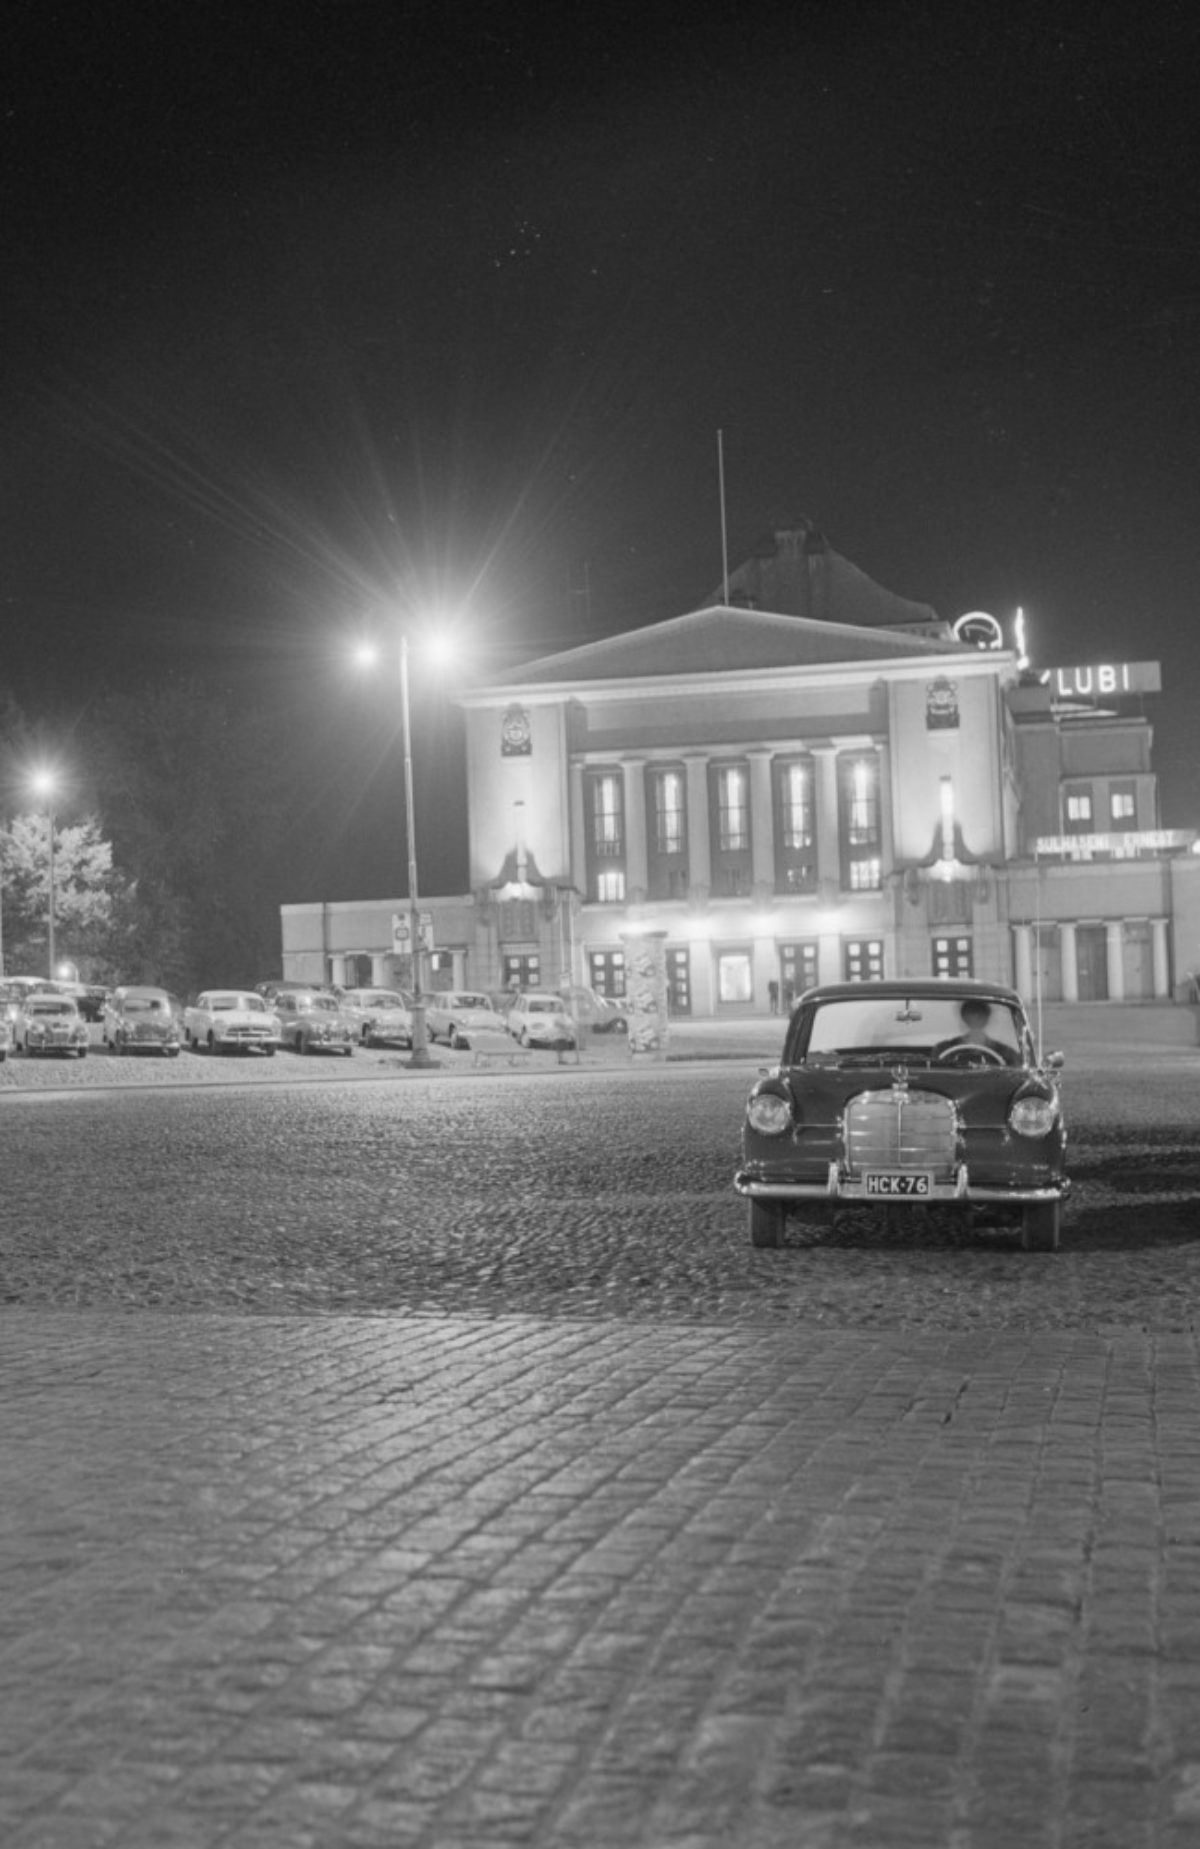 Tampere Central Square, 1963. Photo: Teuvo Kanerva / Picture Collections of the Finnish Heritage Agency